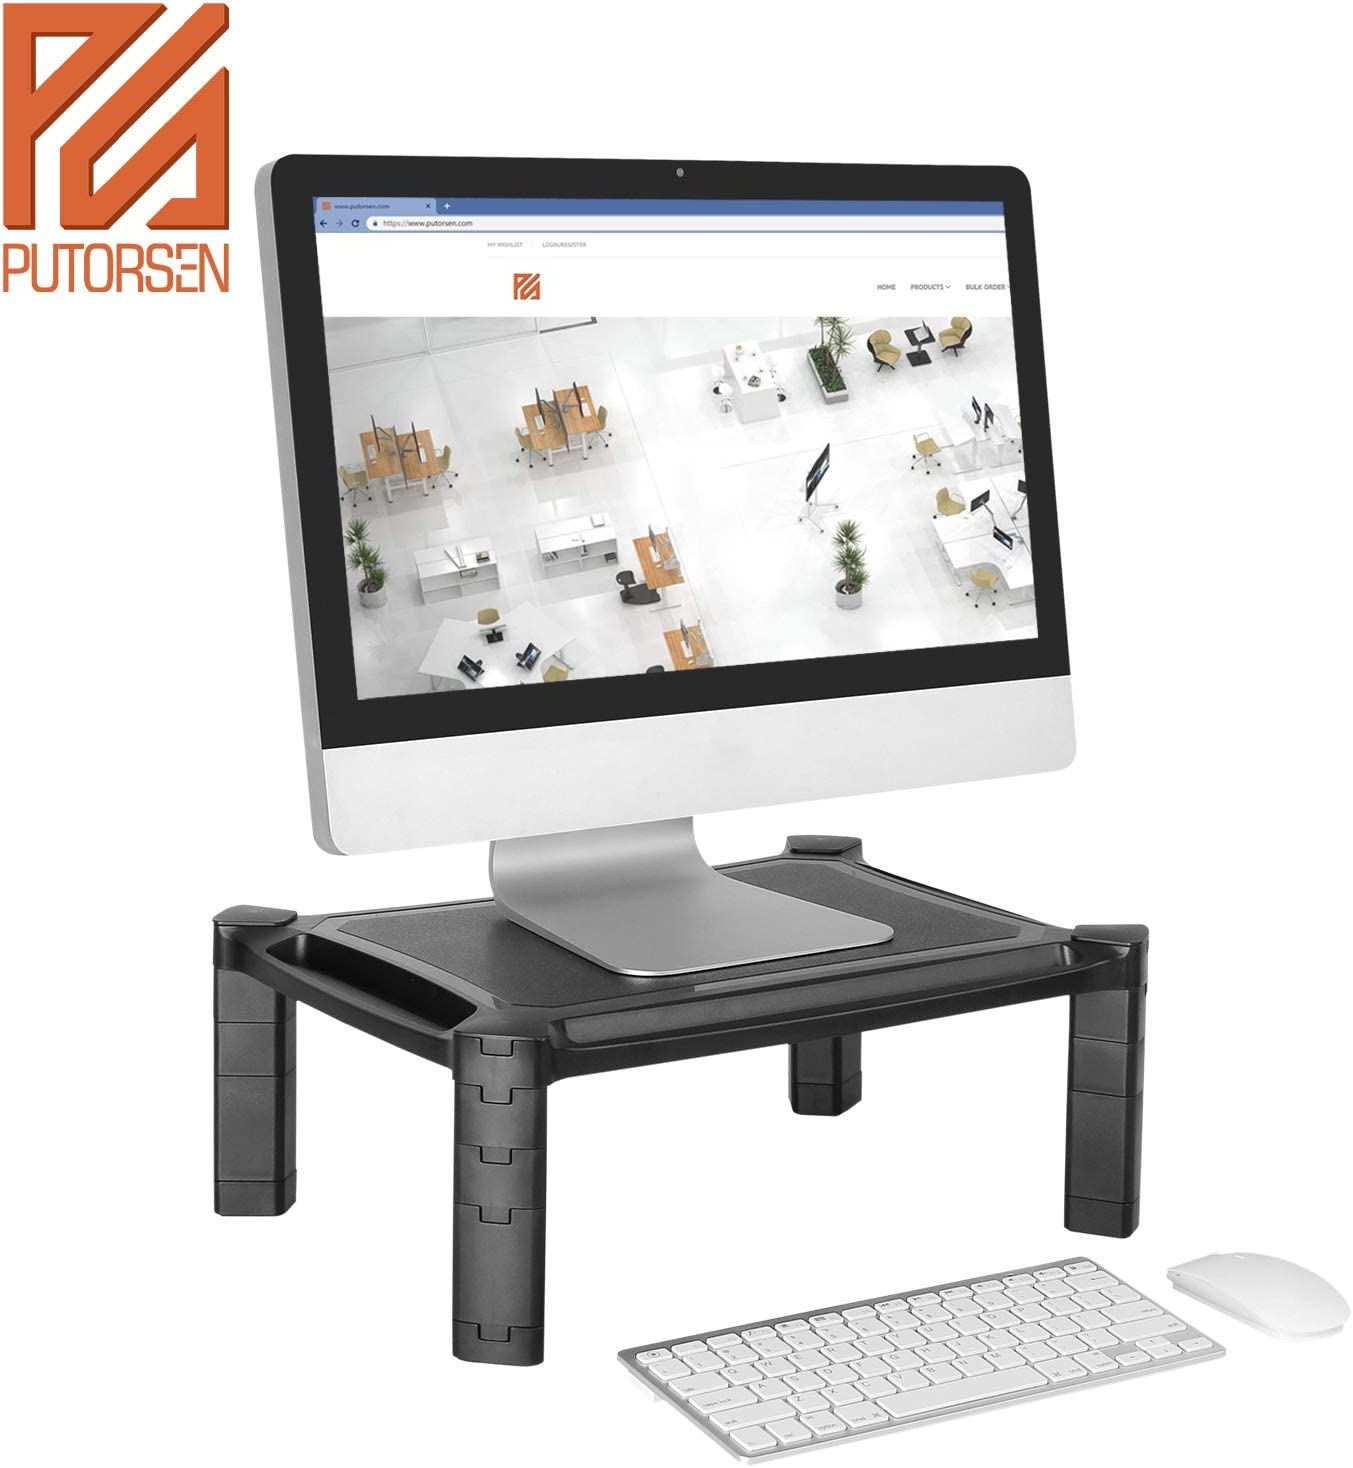 Cable Management Slot iMac PUTORSEN/® Adjustable Monitor Stand Riser with Pull Out Drawer for Computer Printer up to 10KG PC Laptop with Tablet /& Phone Holder